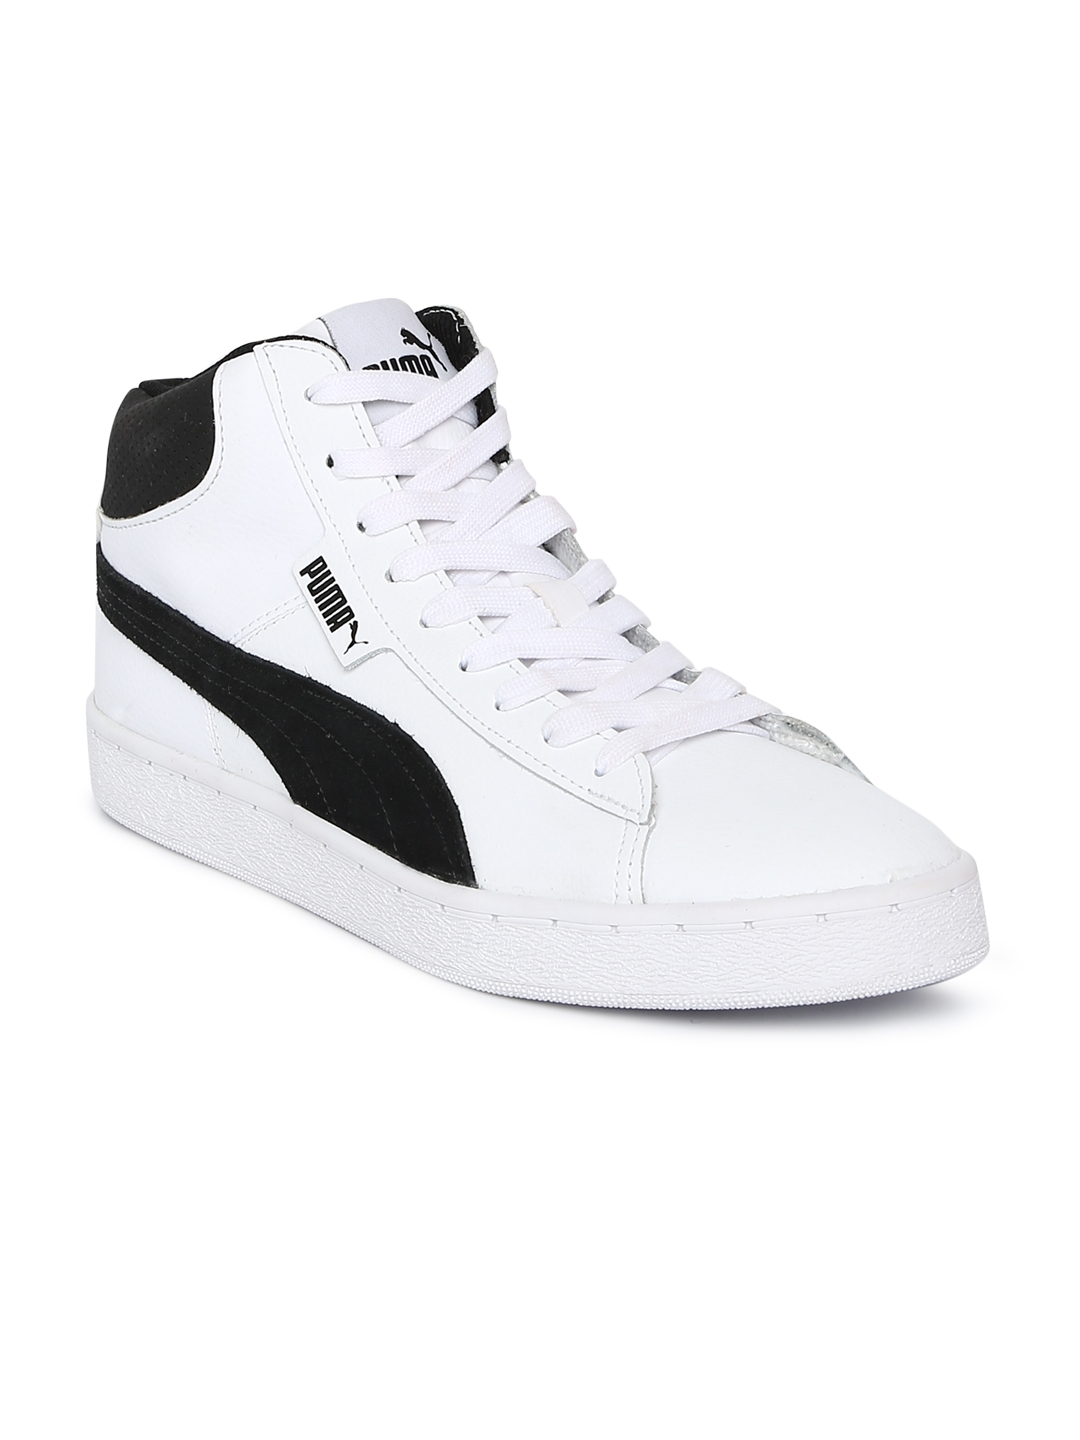 19a329e9bbe Buy Puma Men White 1948 Mid SL IDP Mid Top Sneakers - Casual Shoes ...